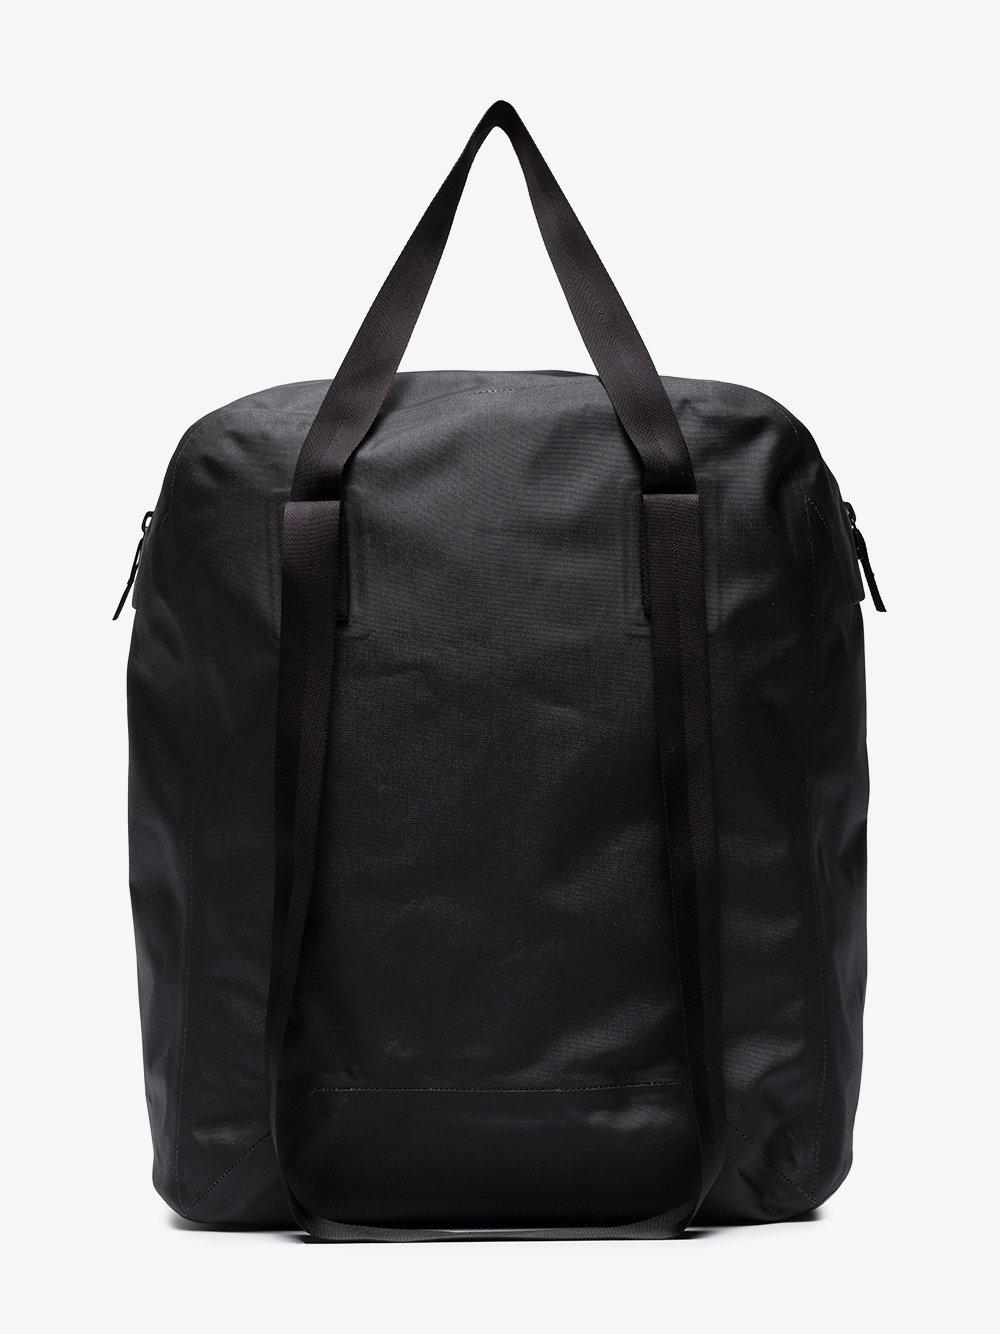 Arc'teryx Synthetic Seque Shell Tote Bag in Black for Men